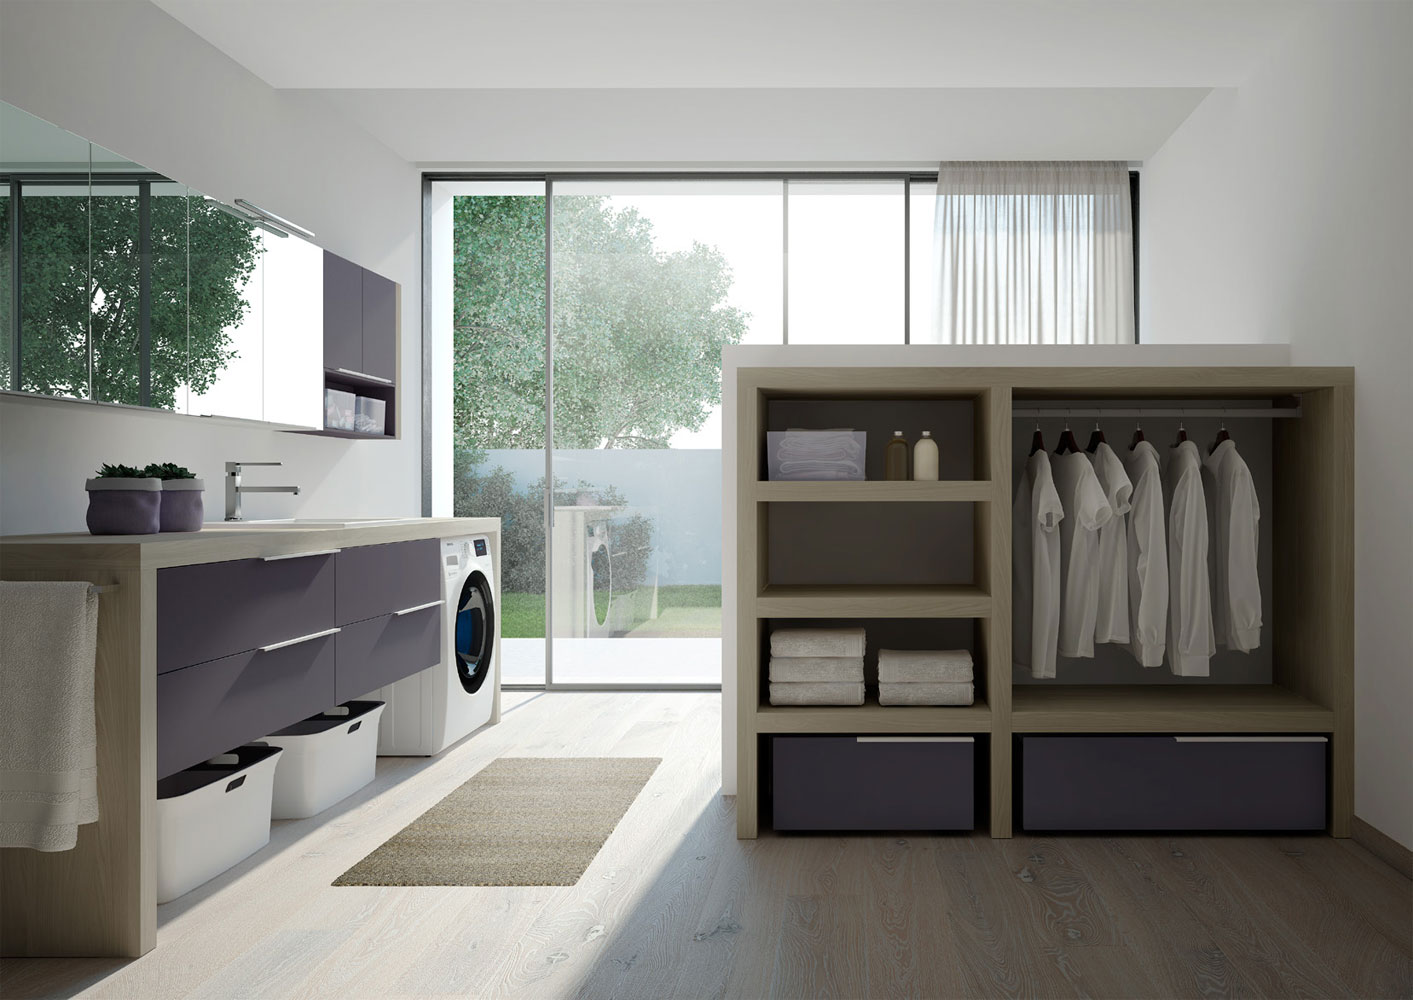 Furniture collection for laundry room spazio time - Idea arredo cucina ...